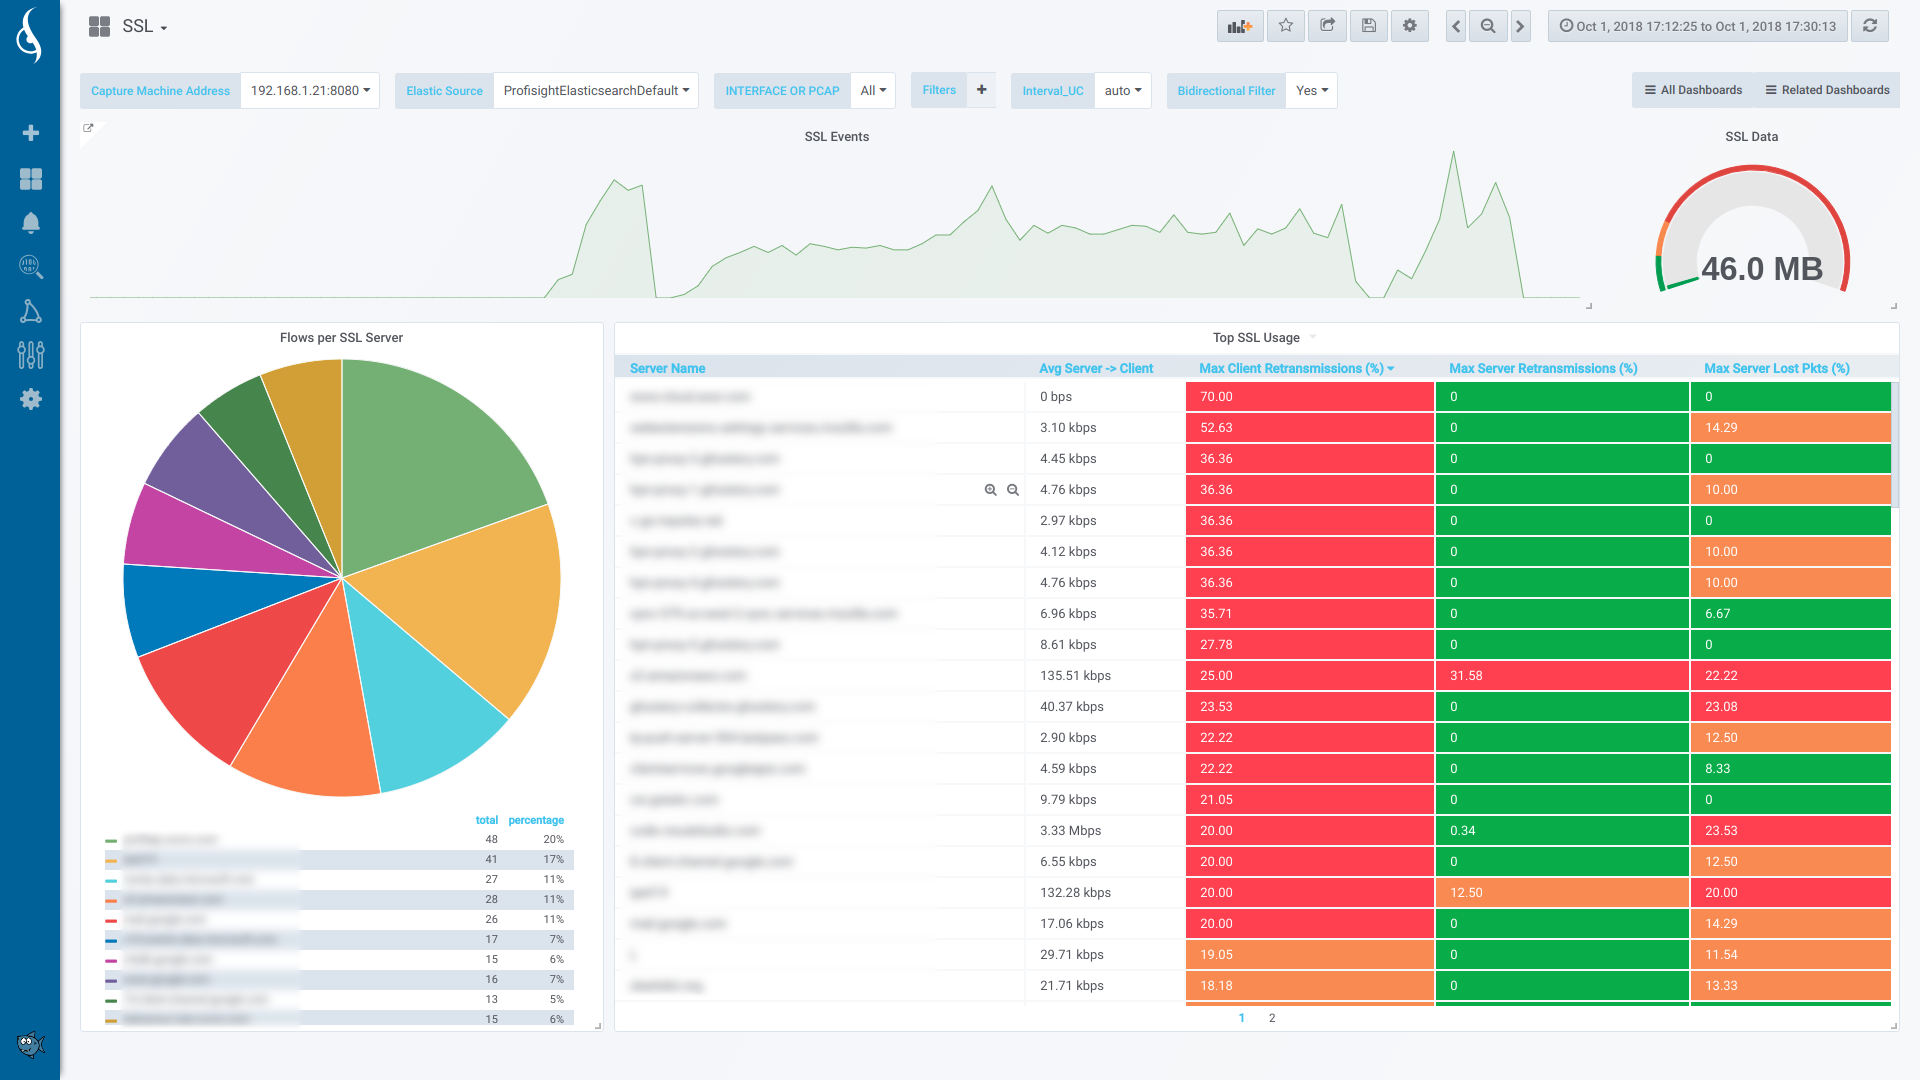 ProfiSight-Dashboards-APM-SSL